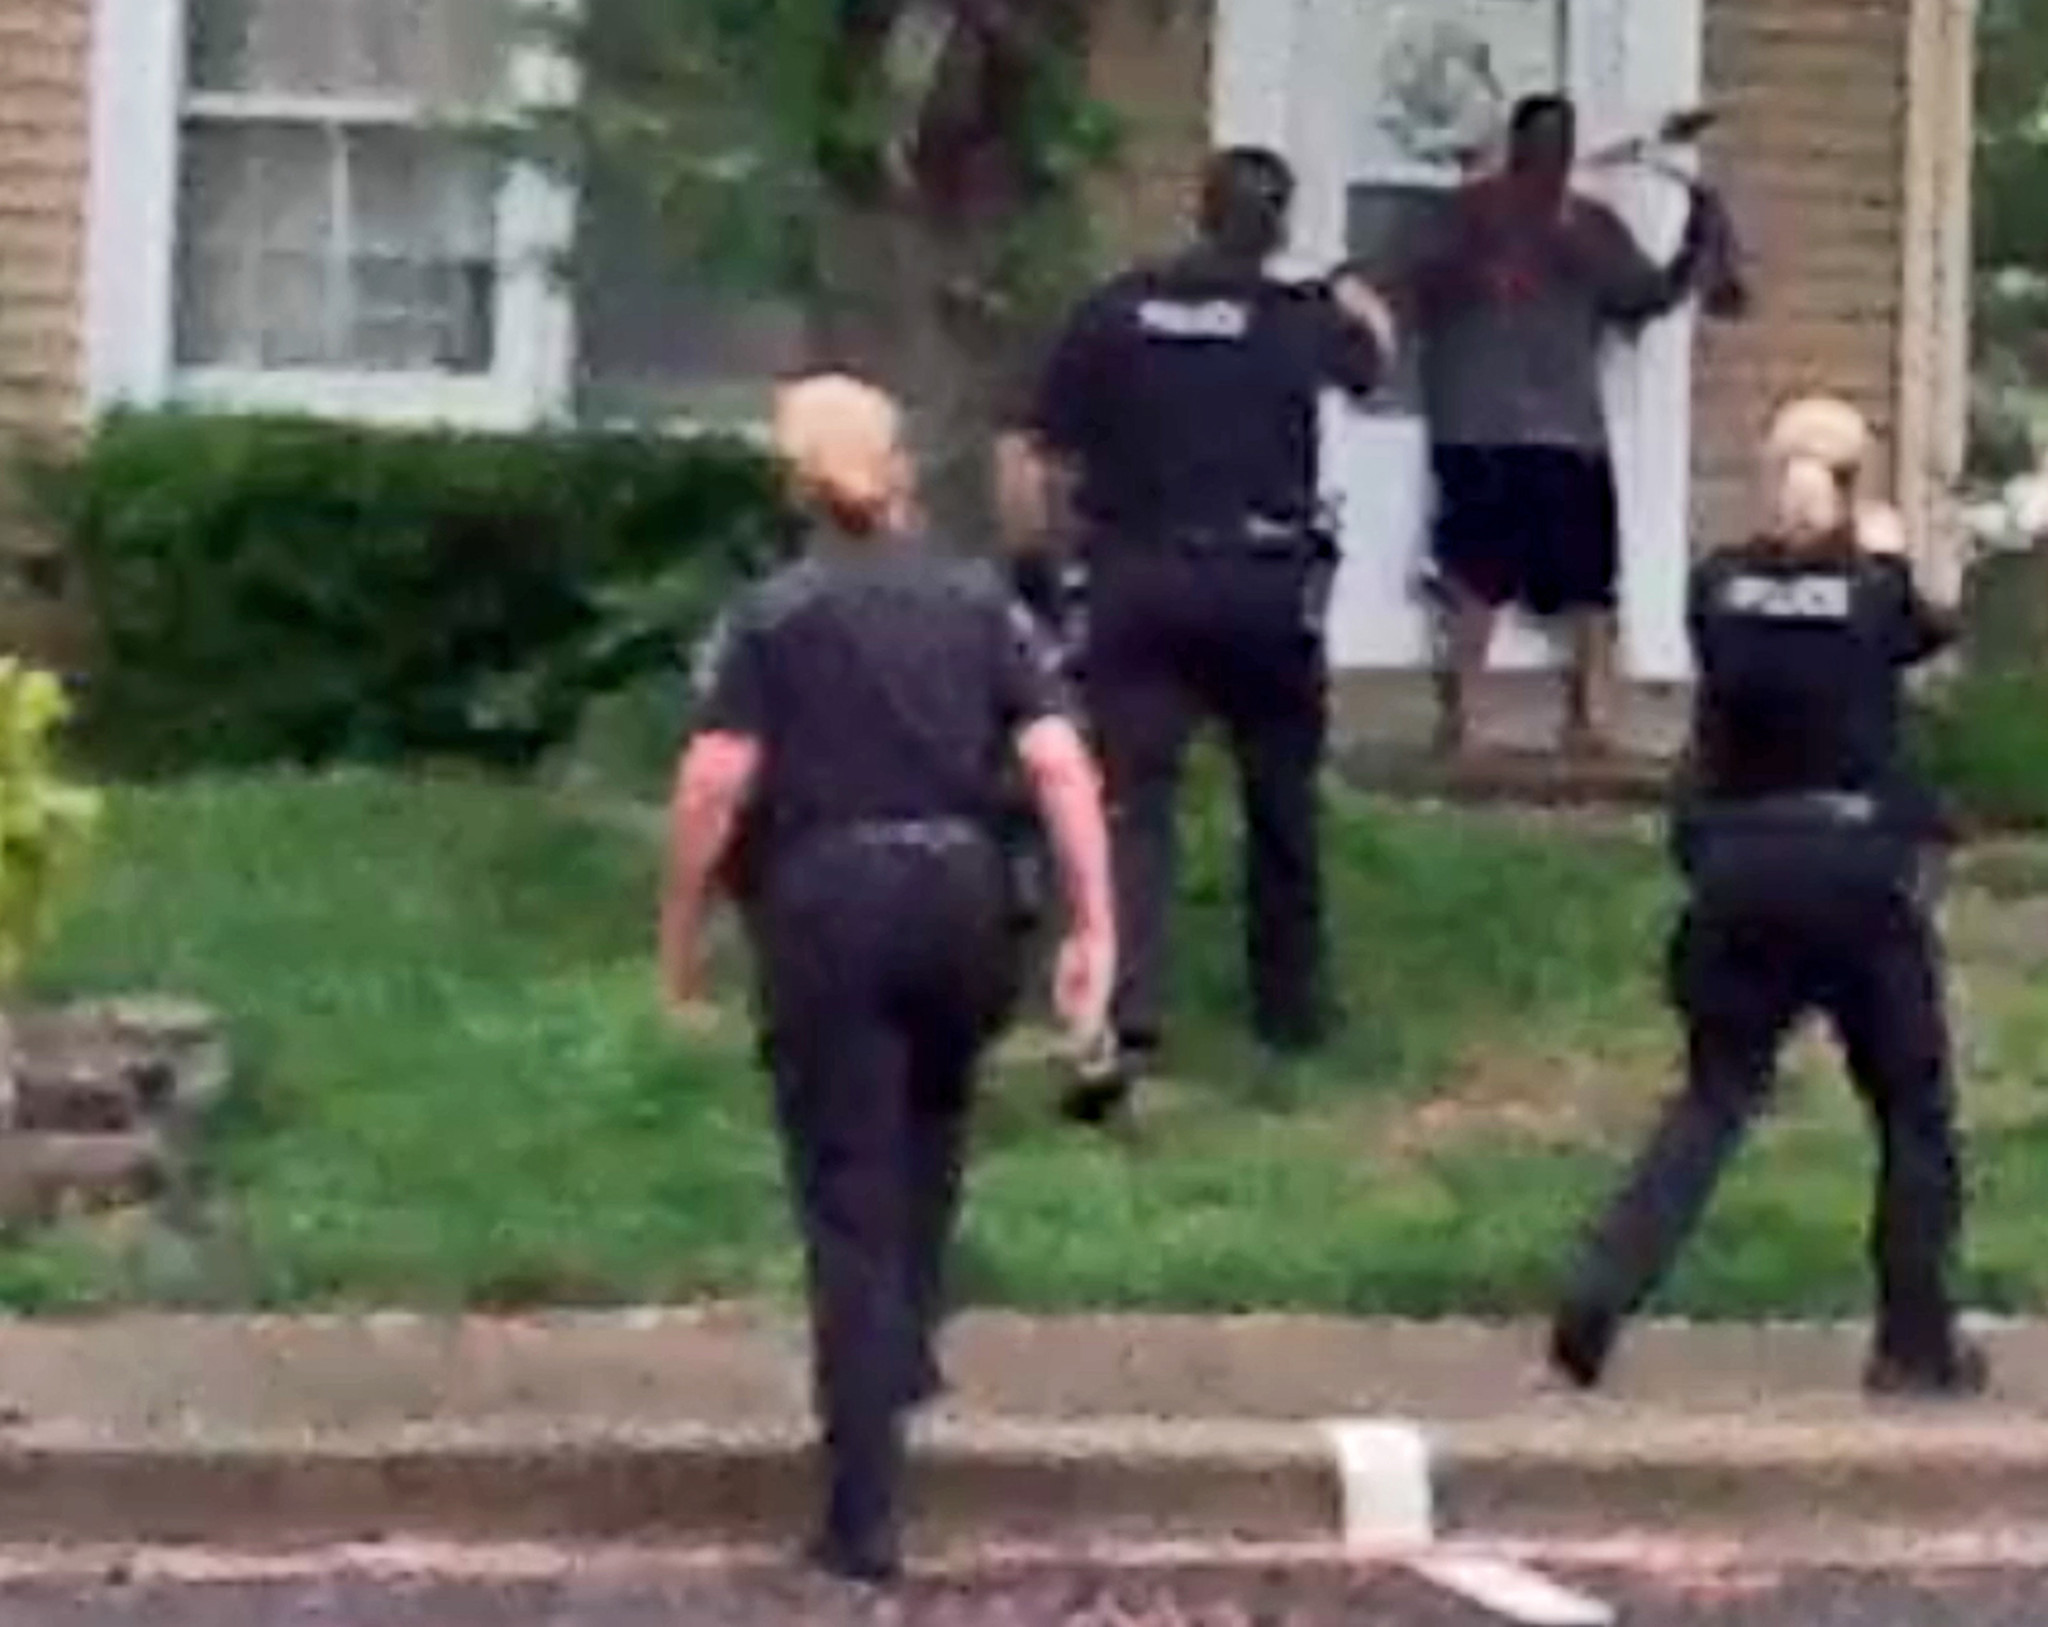 police in maryland didn t follow taser safety recommendations in